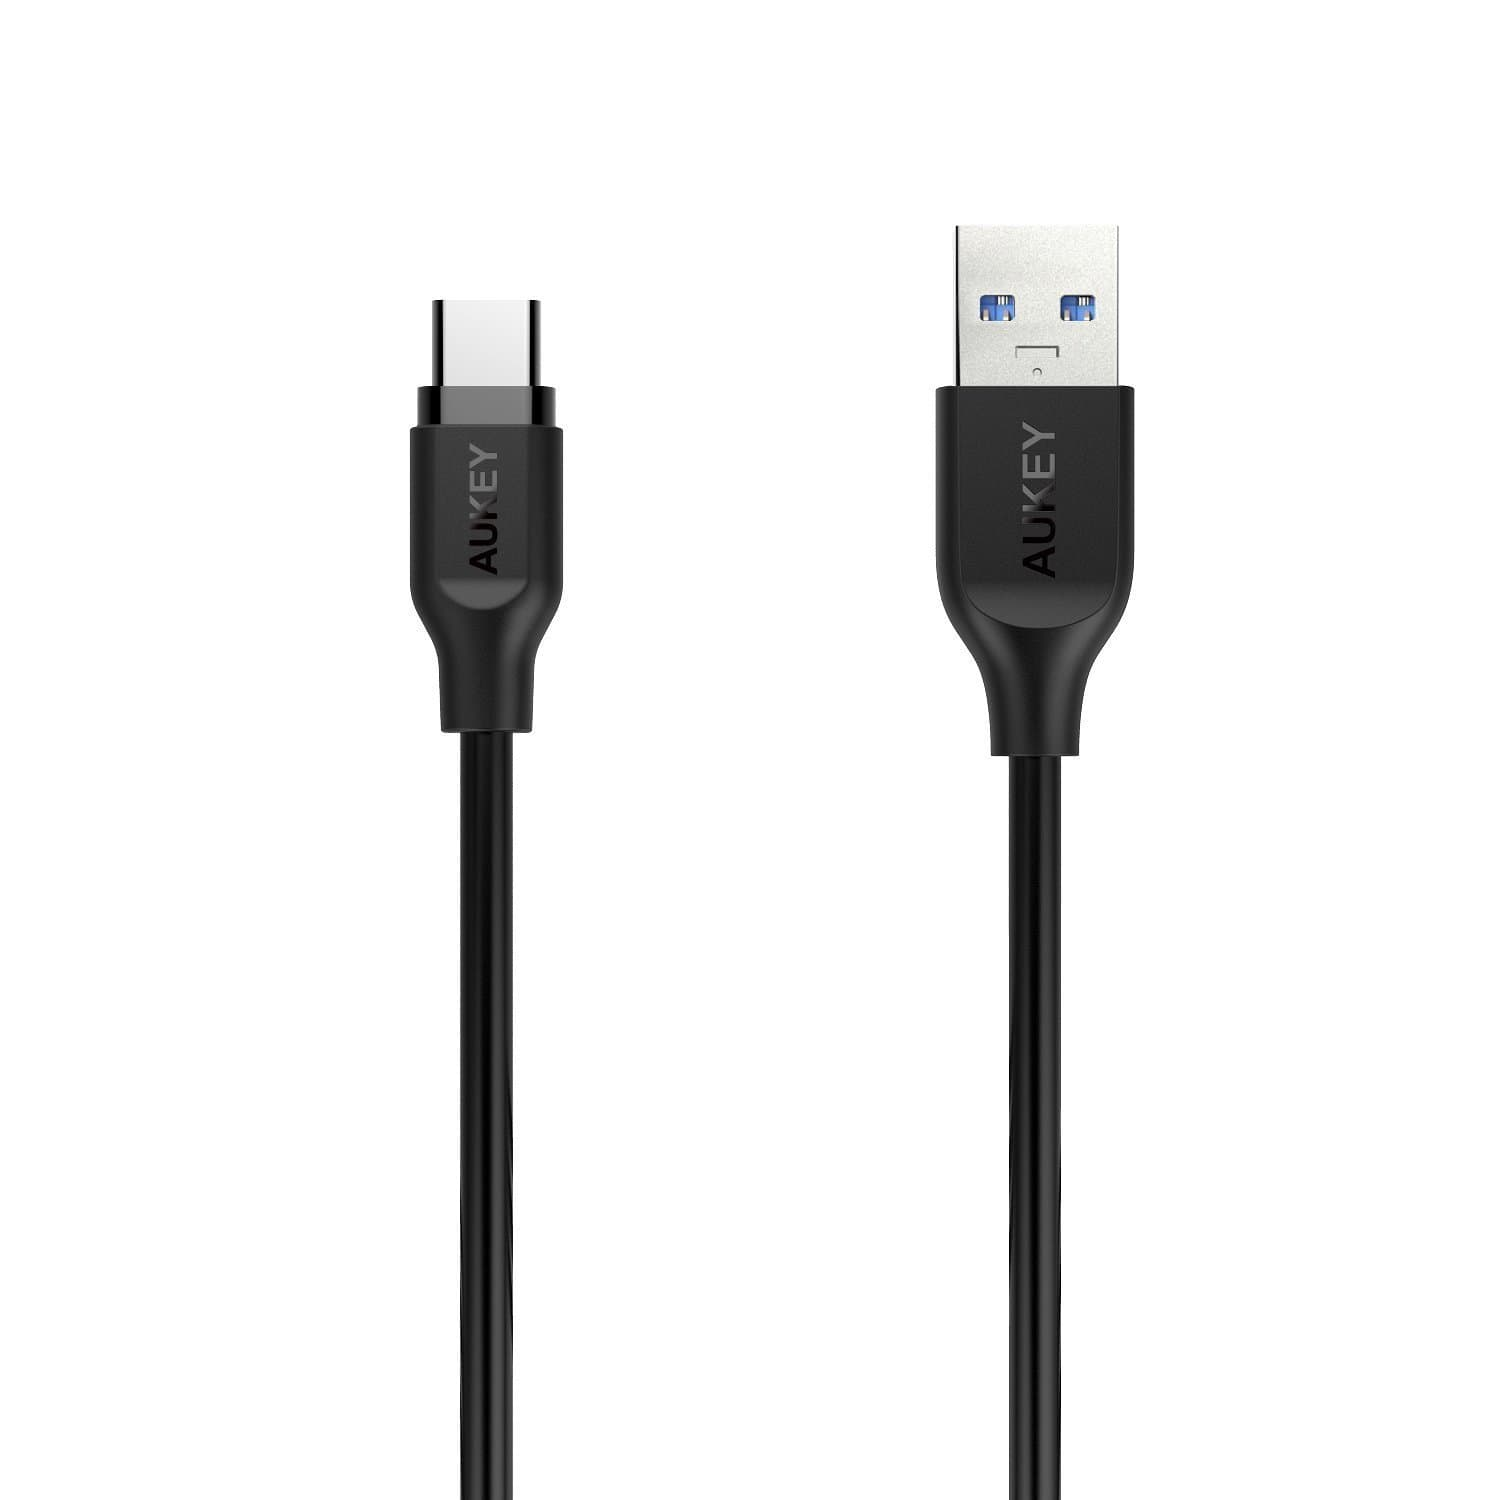 AUKEY CB-CD4 1M USB C Cable Type-C to USB 3.0 Cable - Aukey Malaysia Official Store